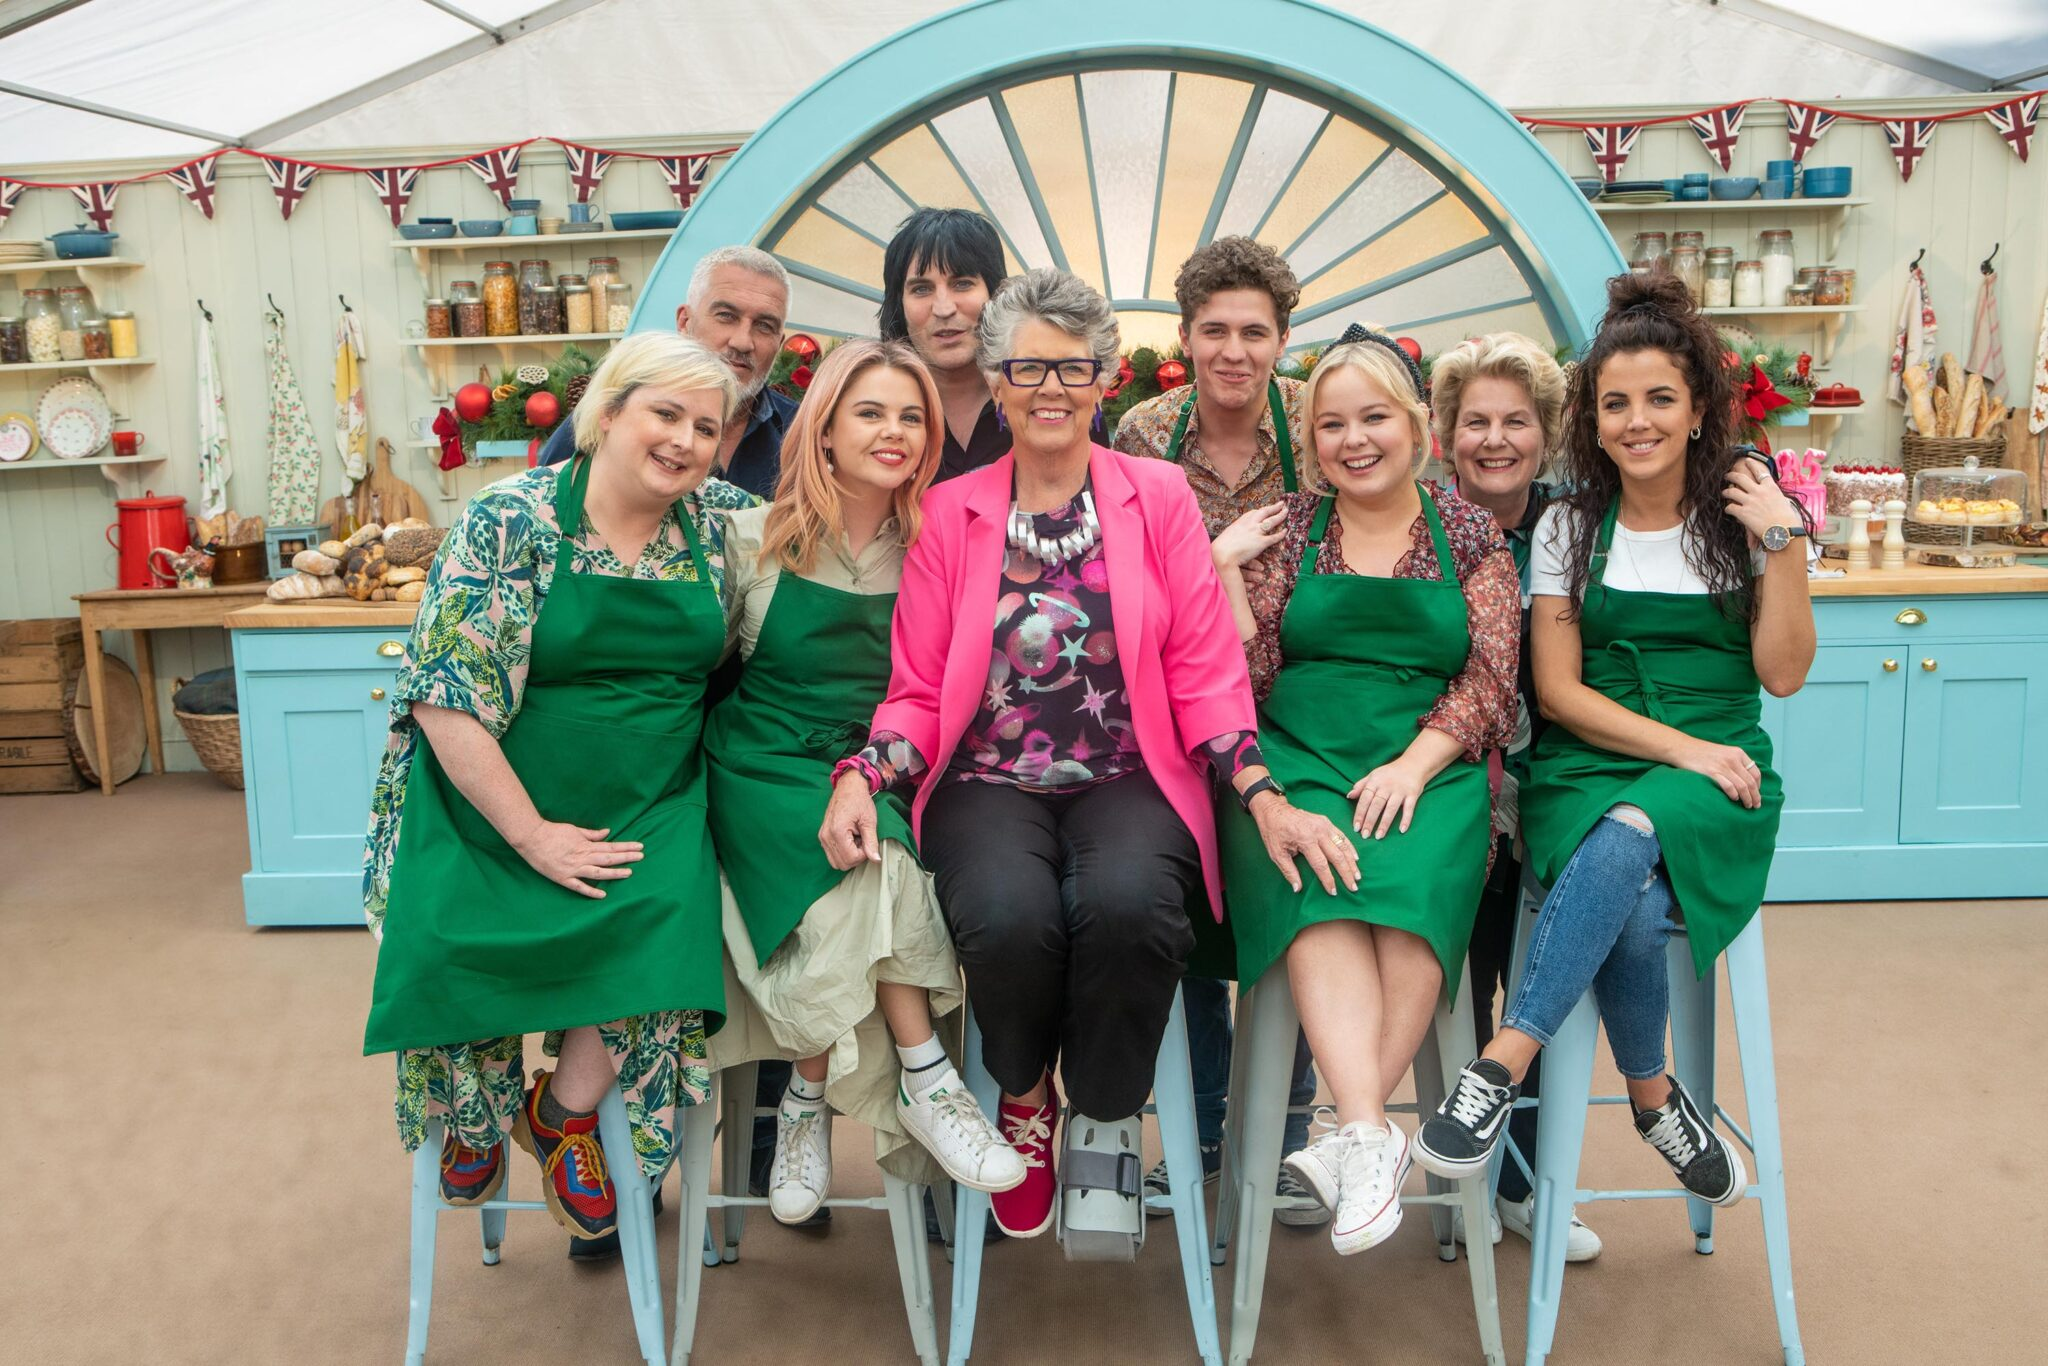 Derry Girls Season 3: What We Know So Far About Filming & Air Date 4